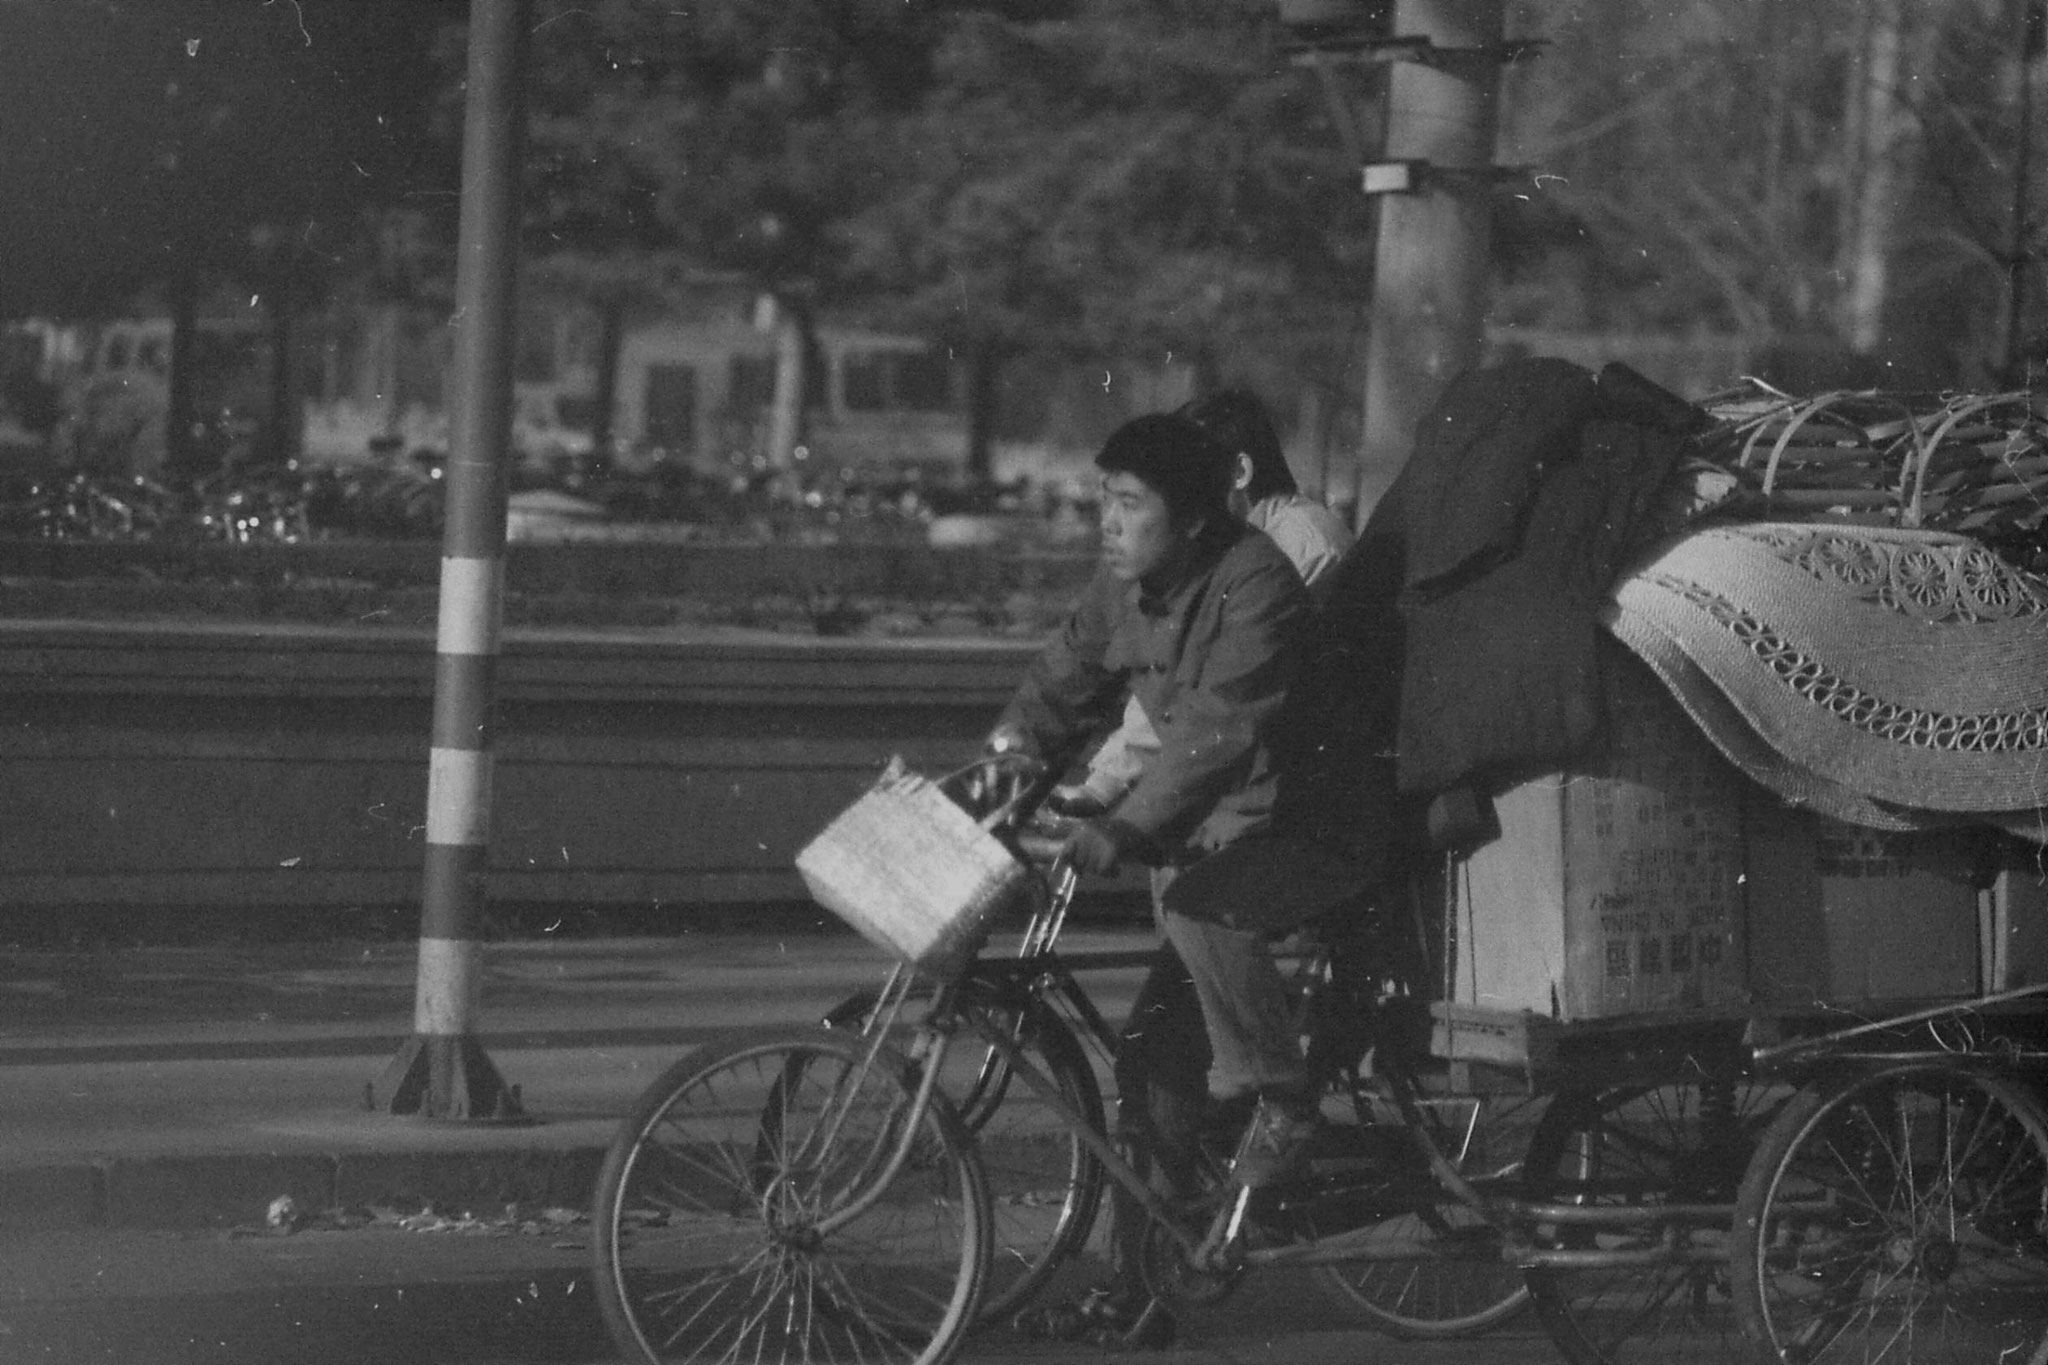 23/11/1988: 8: street scenes outside Friendship Hotel